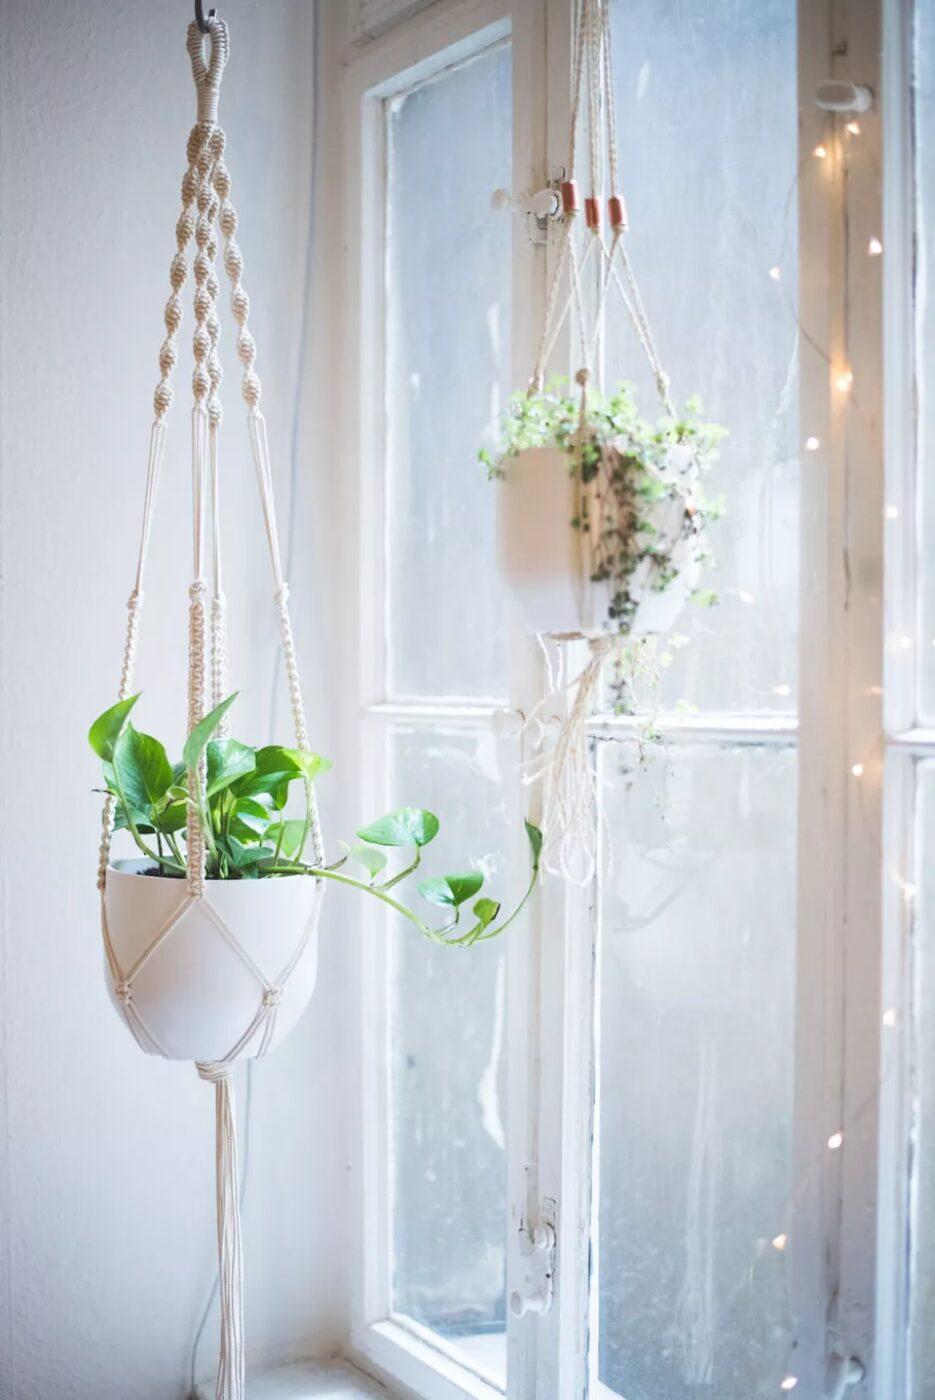 Macrame plant holders in front of a window